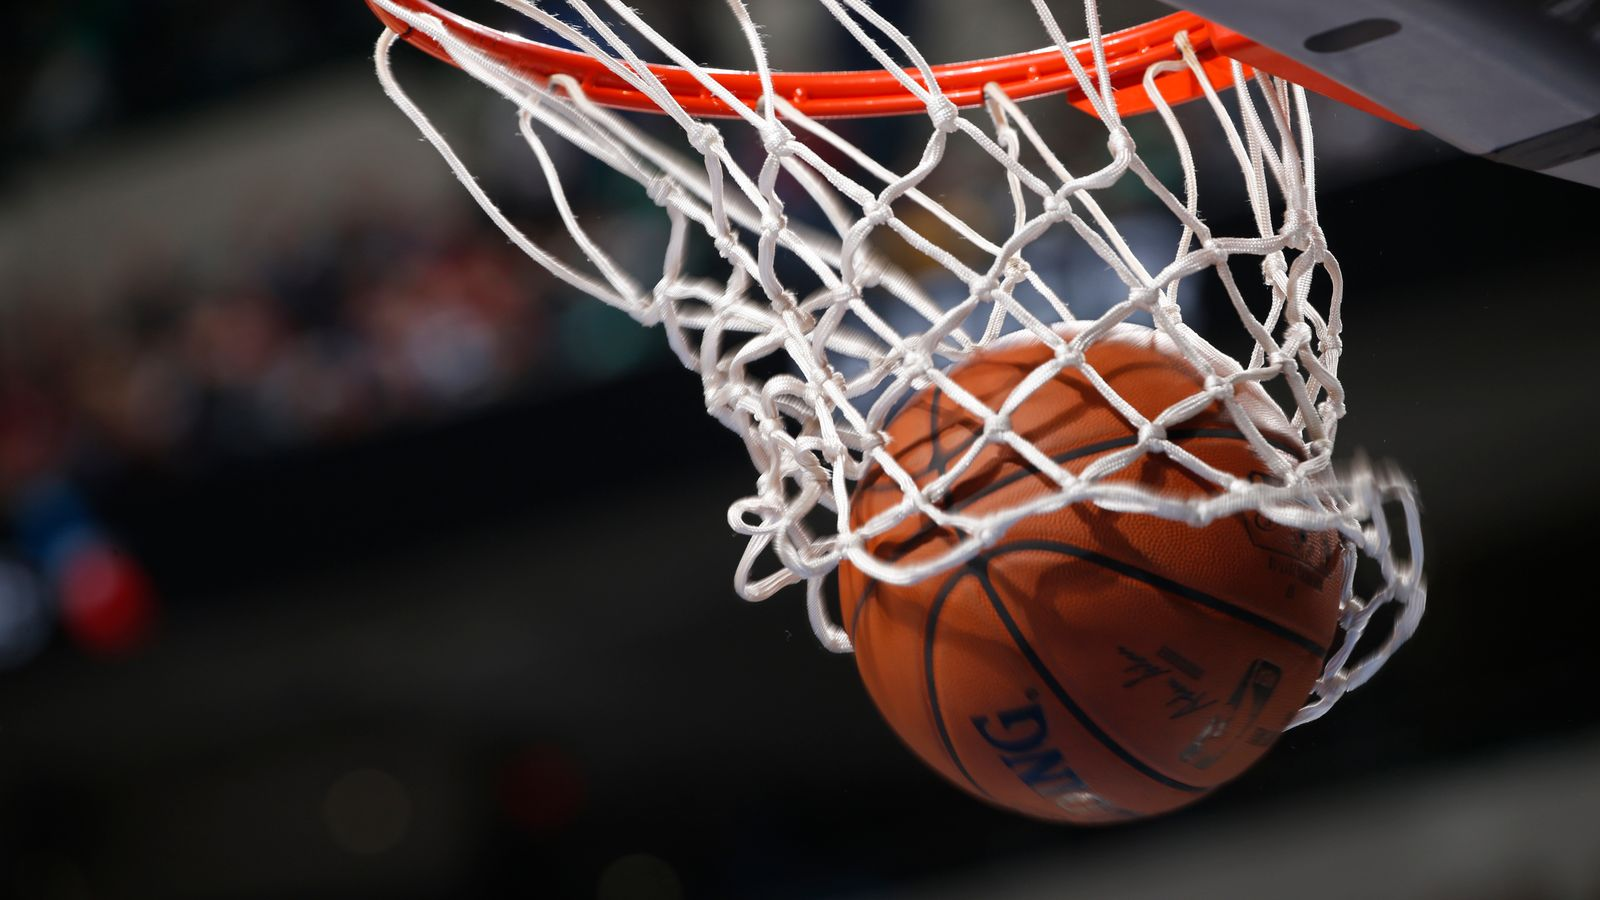 basketball british sports crouch sky tracey talks describes malaysia dragons initial minister positive june daily knicks funding pilipinas alab nets